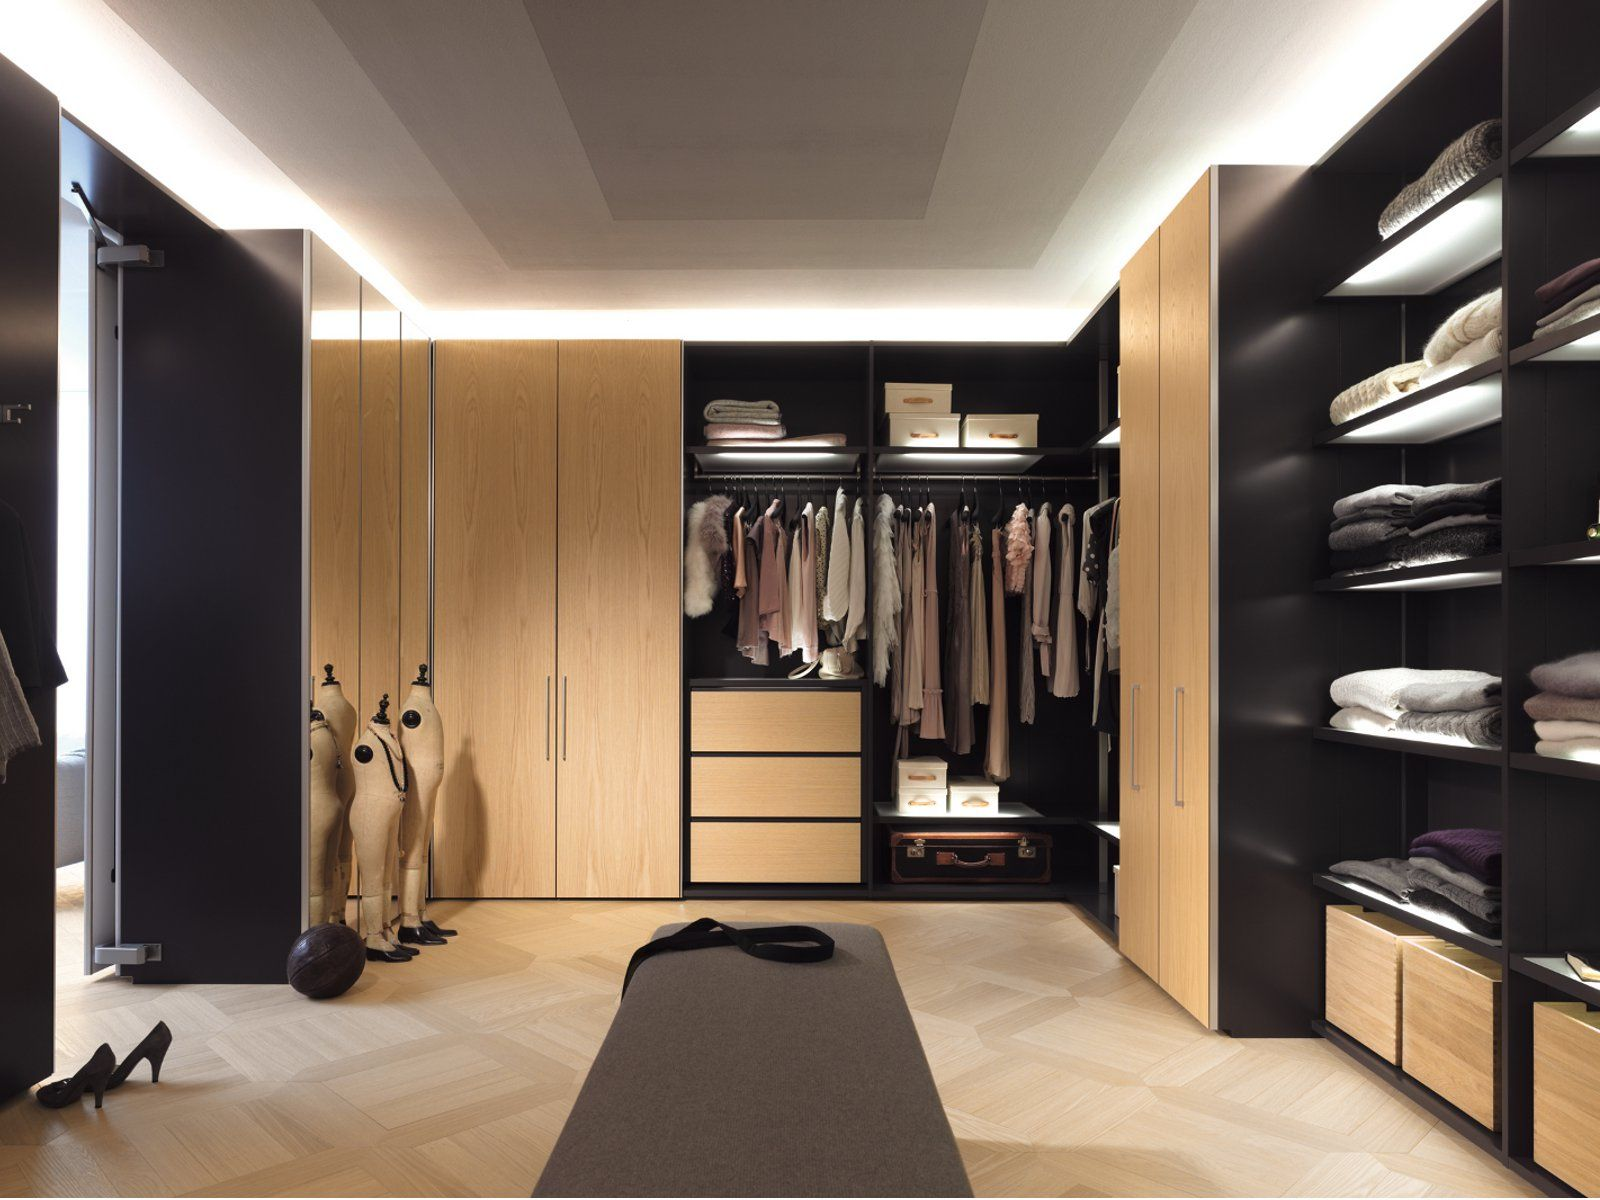 walk in closet lighting ideas. storage closet designer ideas photograph 15 excellent design picture walk in lighting e